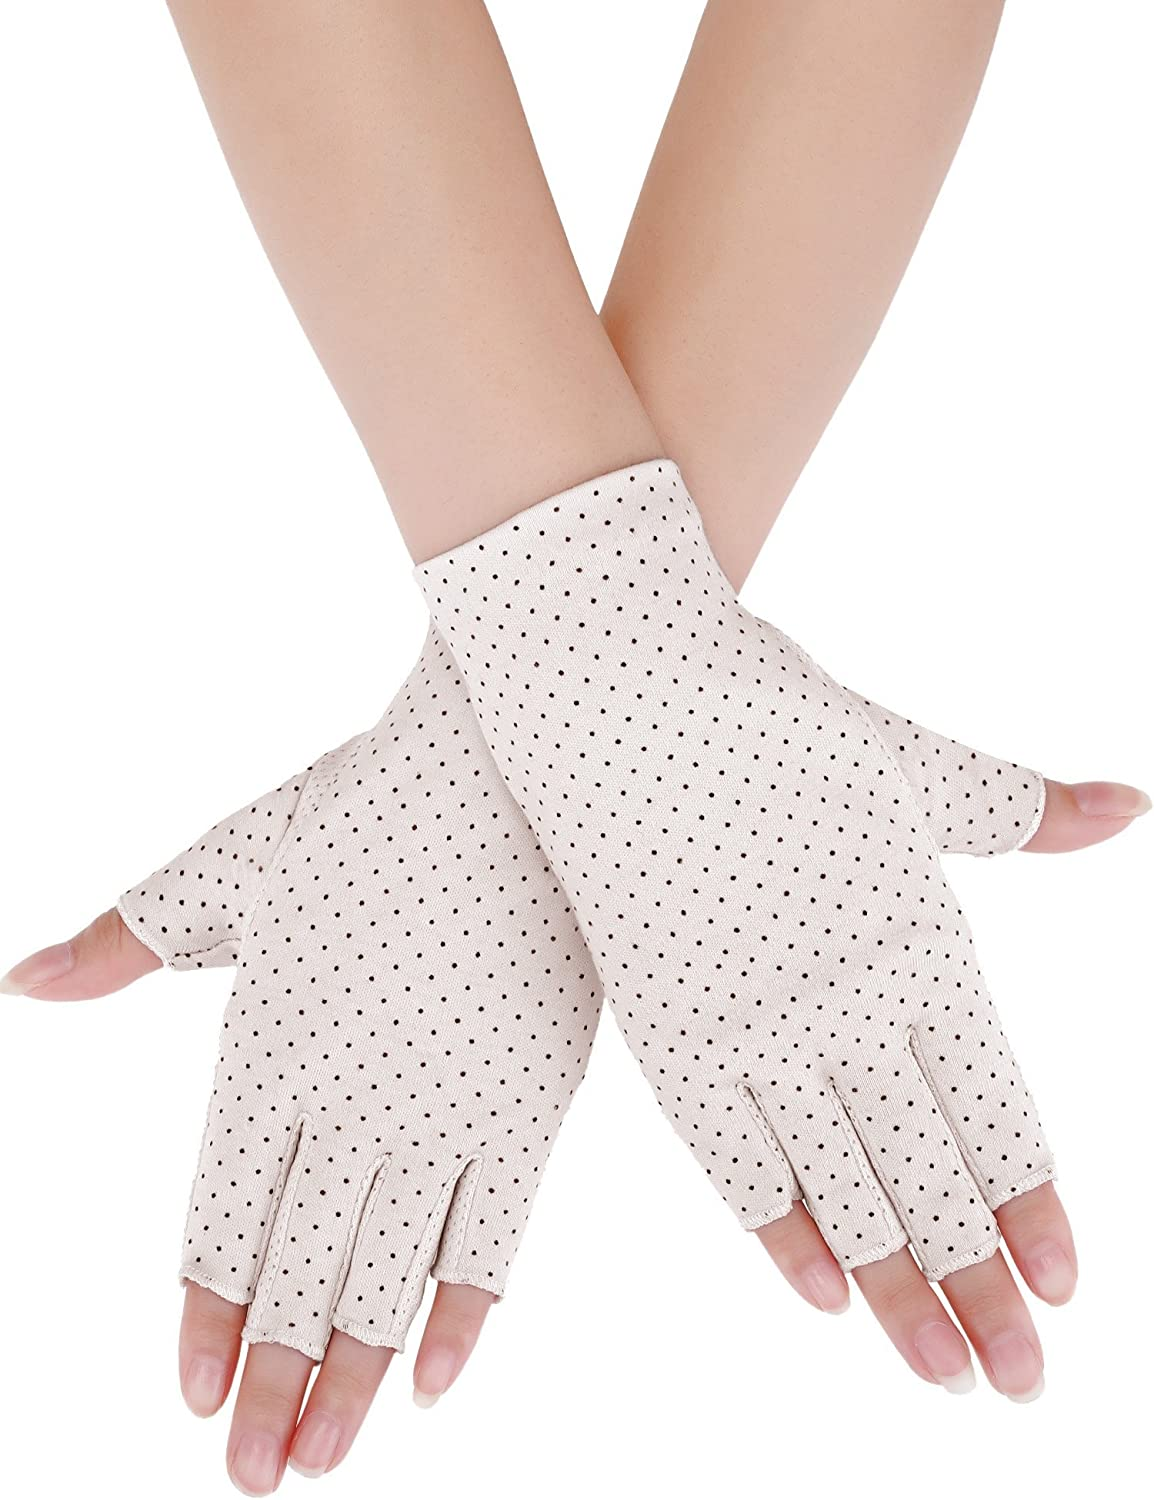 Womens Uv Protection Driving Glove Sun Block Glove Touch Screen Cotton Non-slip